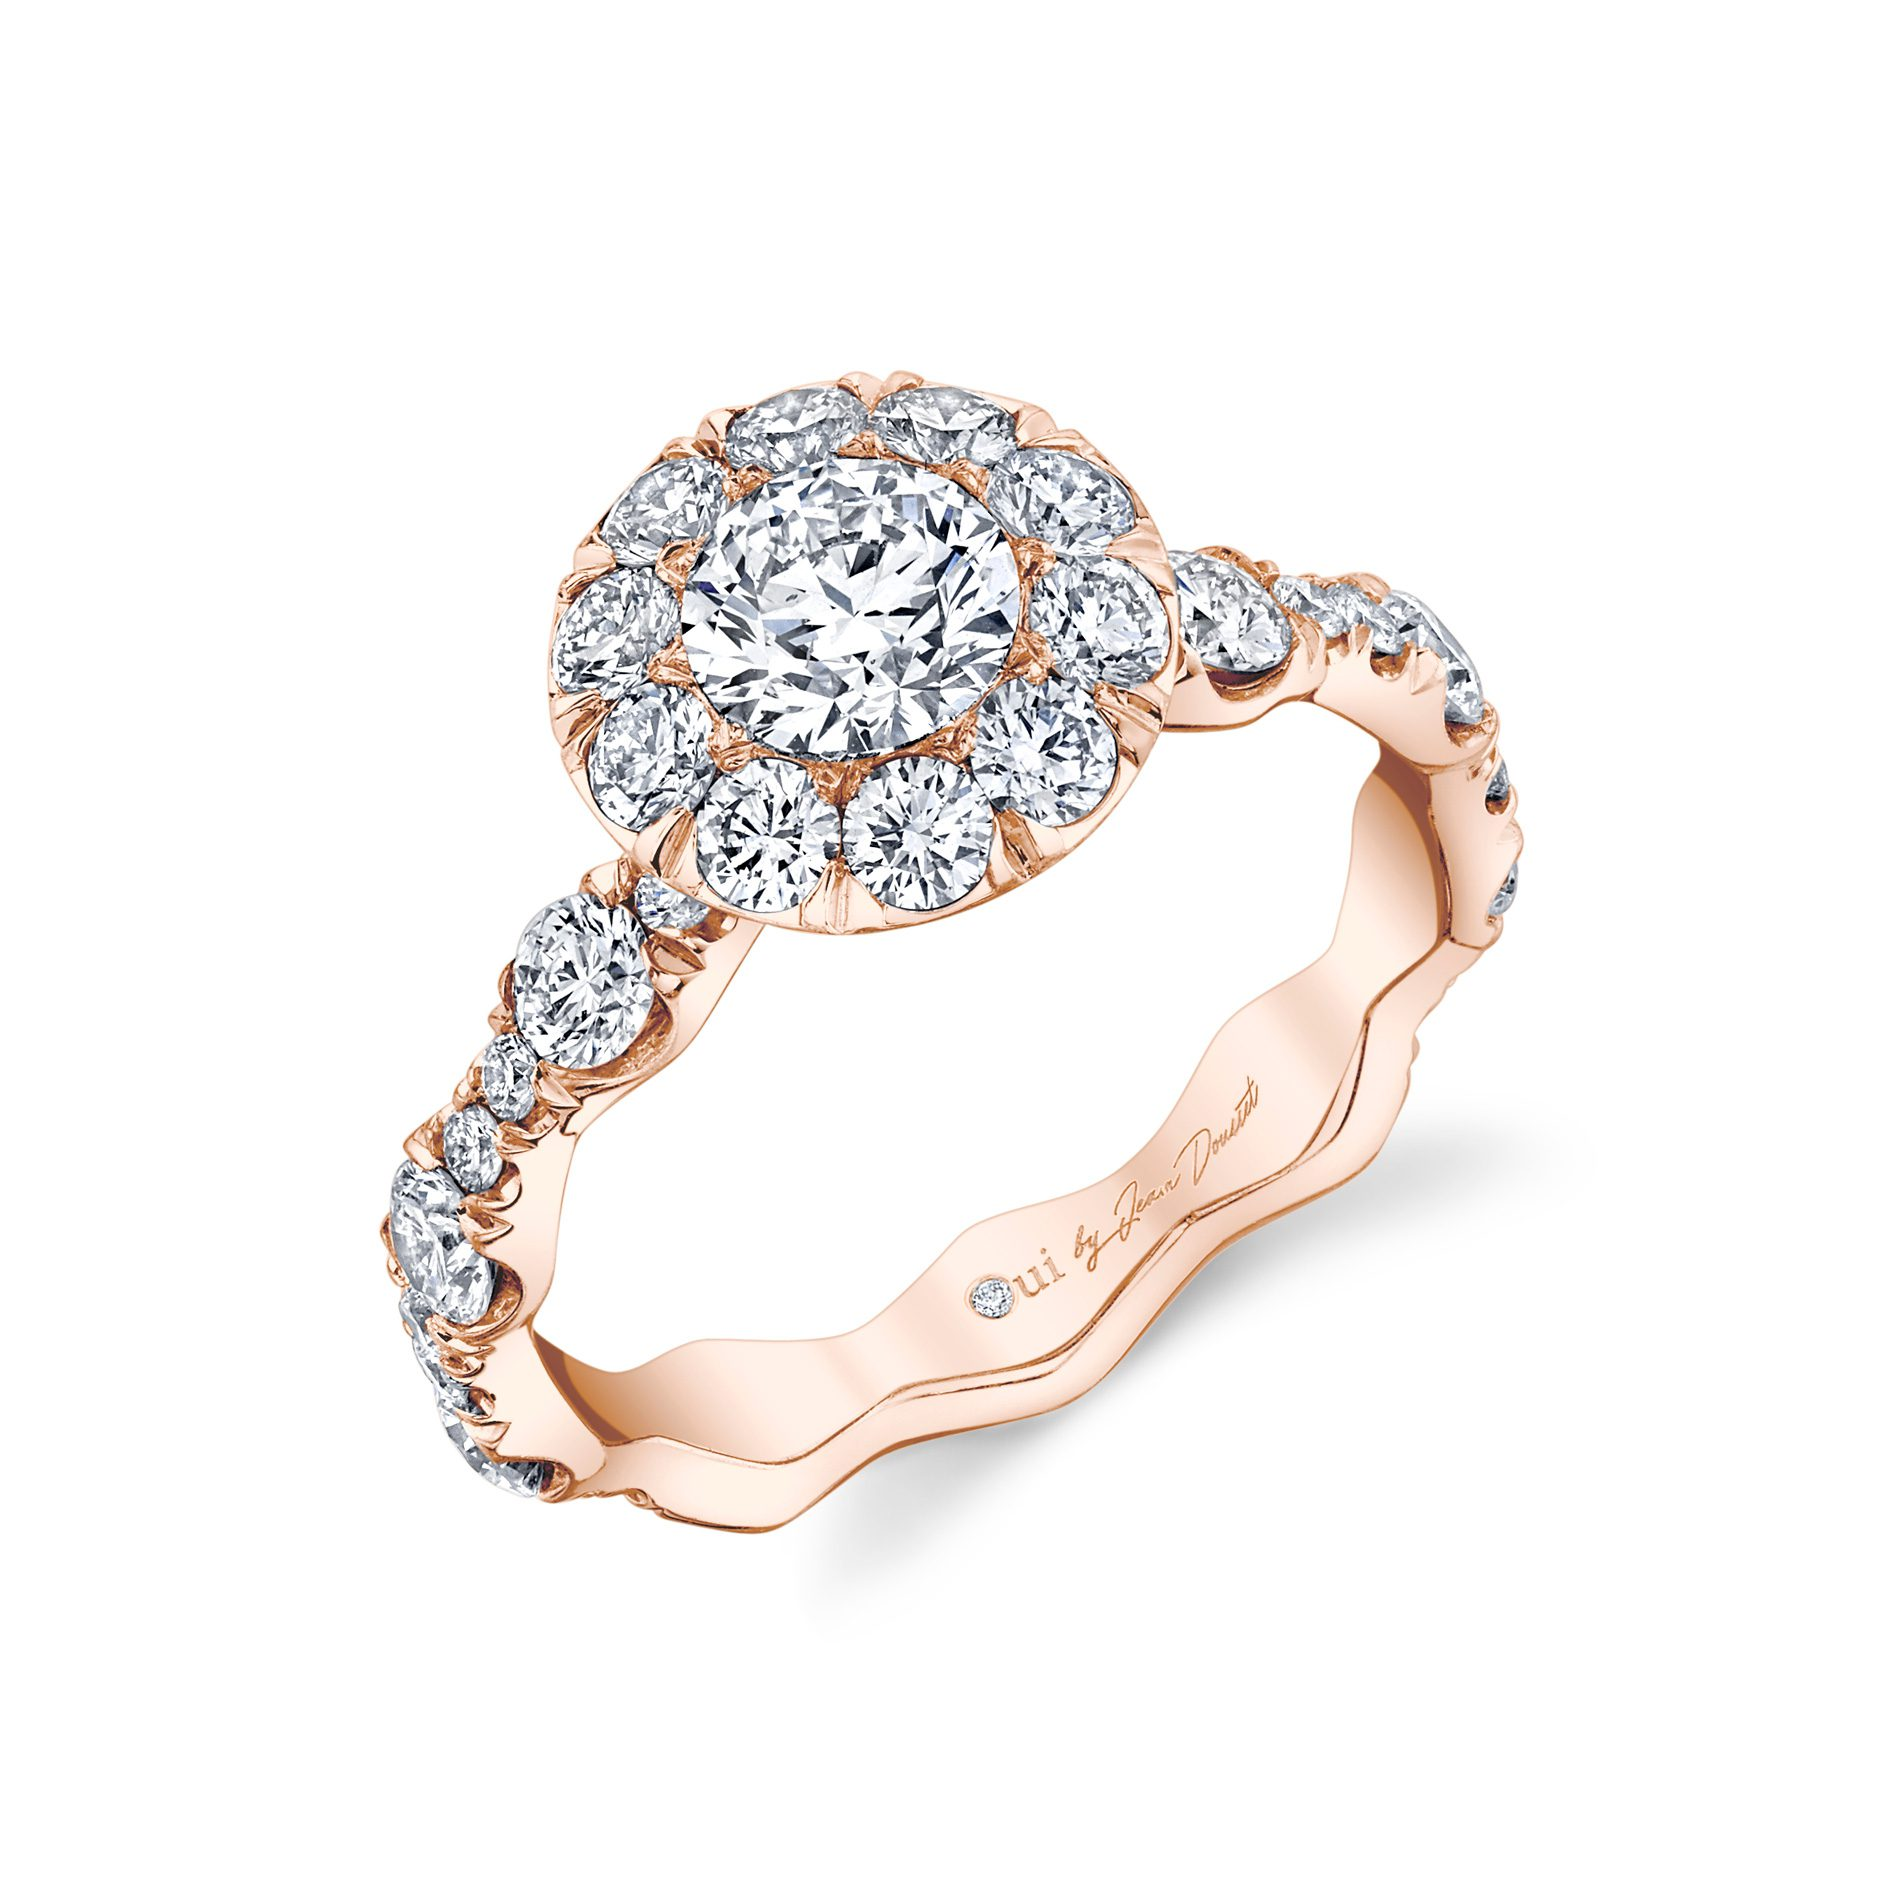 Yvonne Floating Round Brilliant Seamless Solitaire® Engagement Ring 18k Rose Gold Profile View by Oui by Jean Dousset